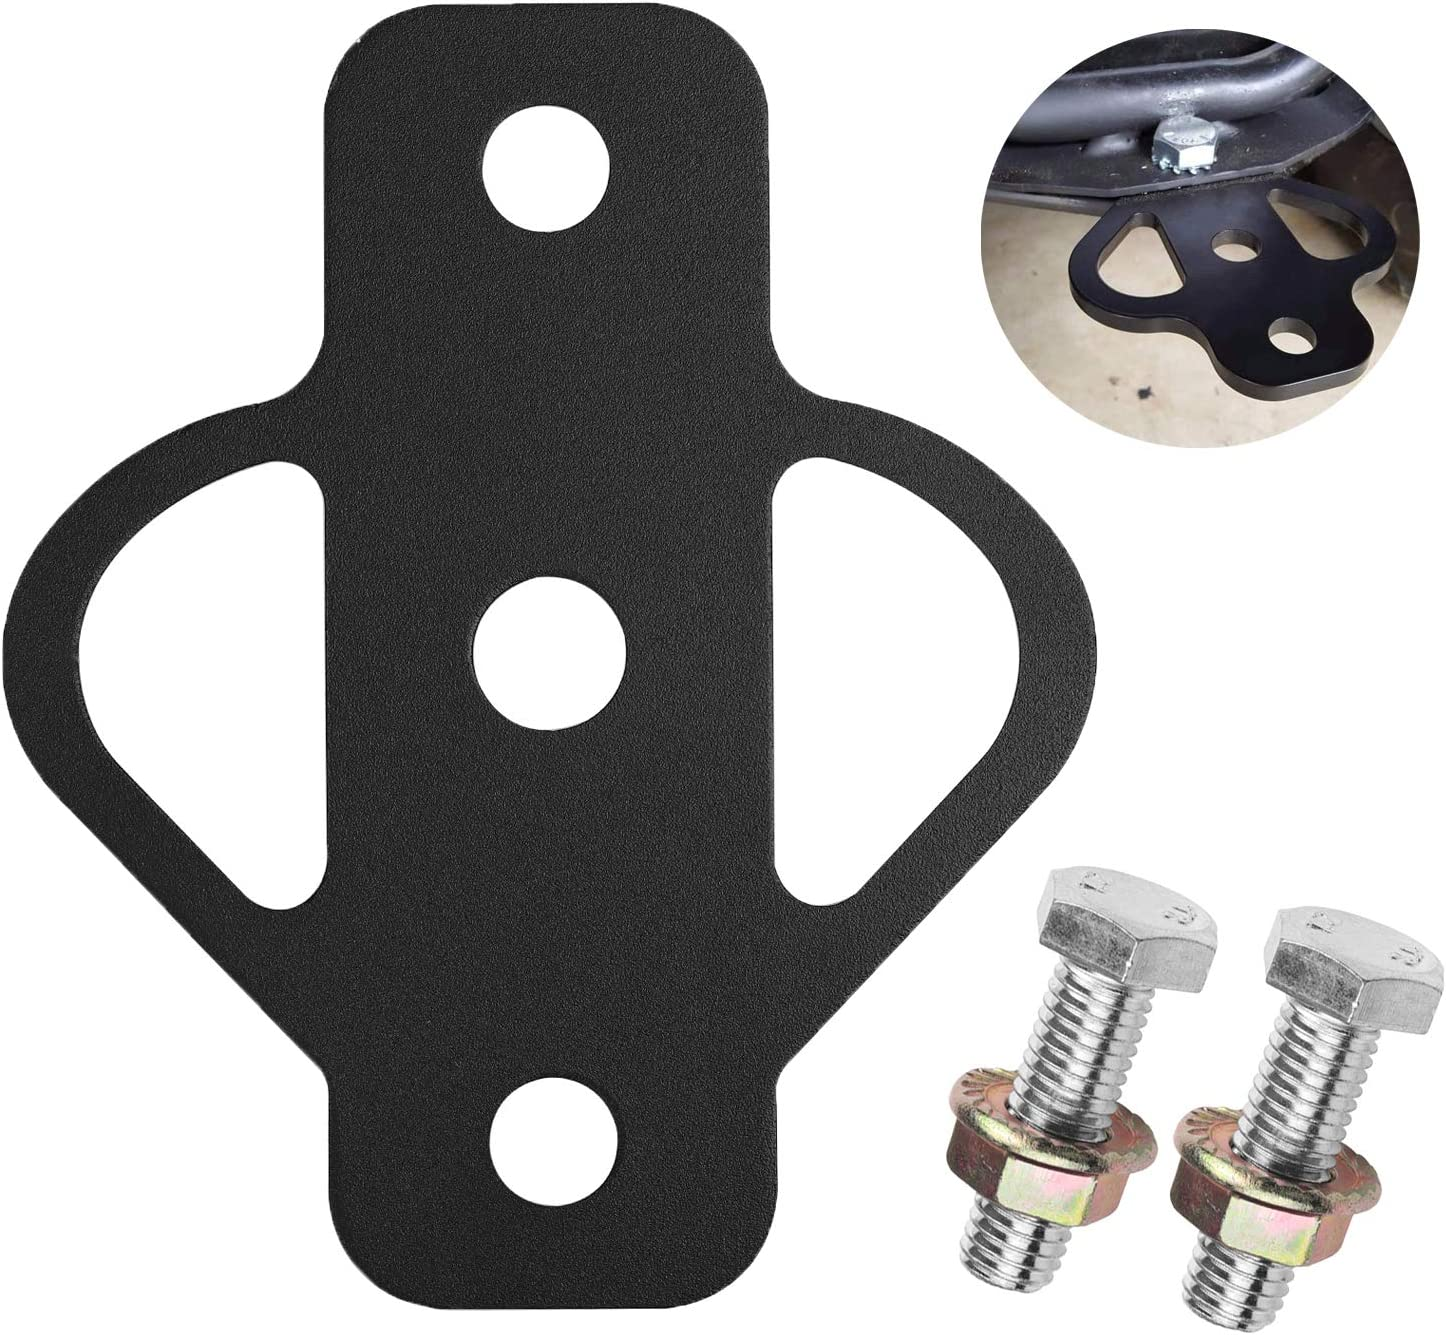 3-Way Trailer Hitch Heavy Duty Hitch Plate Adapter High Strength Steel Hitch Mount with Bolt for ATV Lawn Mower Golf Cart Yard Cart Garden Tractor Flat Towing Tow Ball Mount